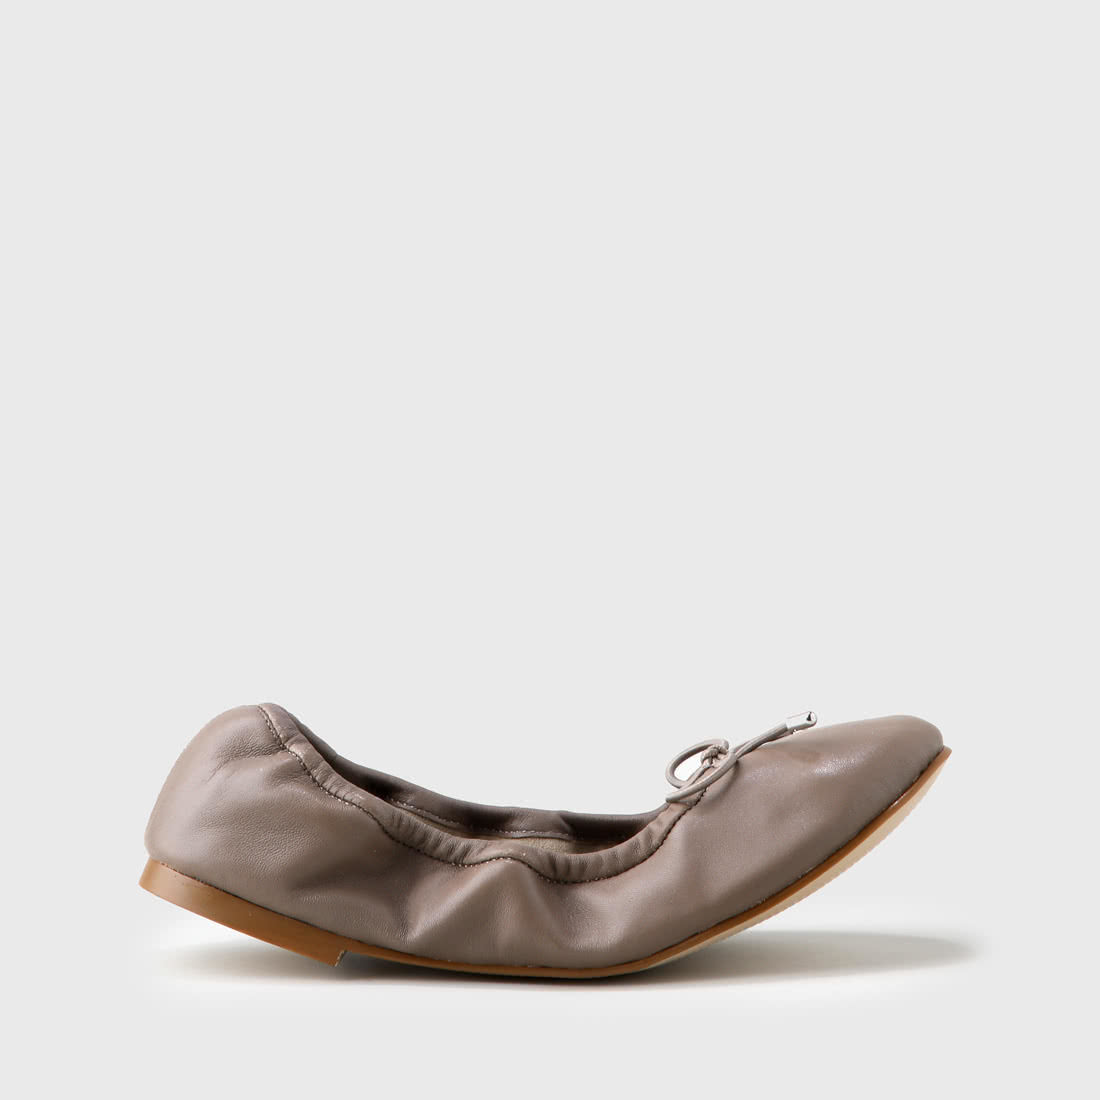 d5092587a380 Amalia ballet flats taupe nappa leather buy online in BUFFALO Online ...